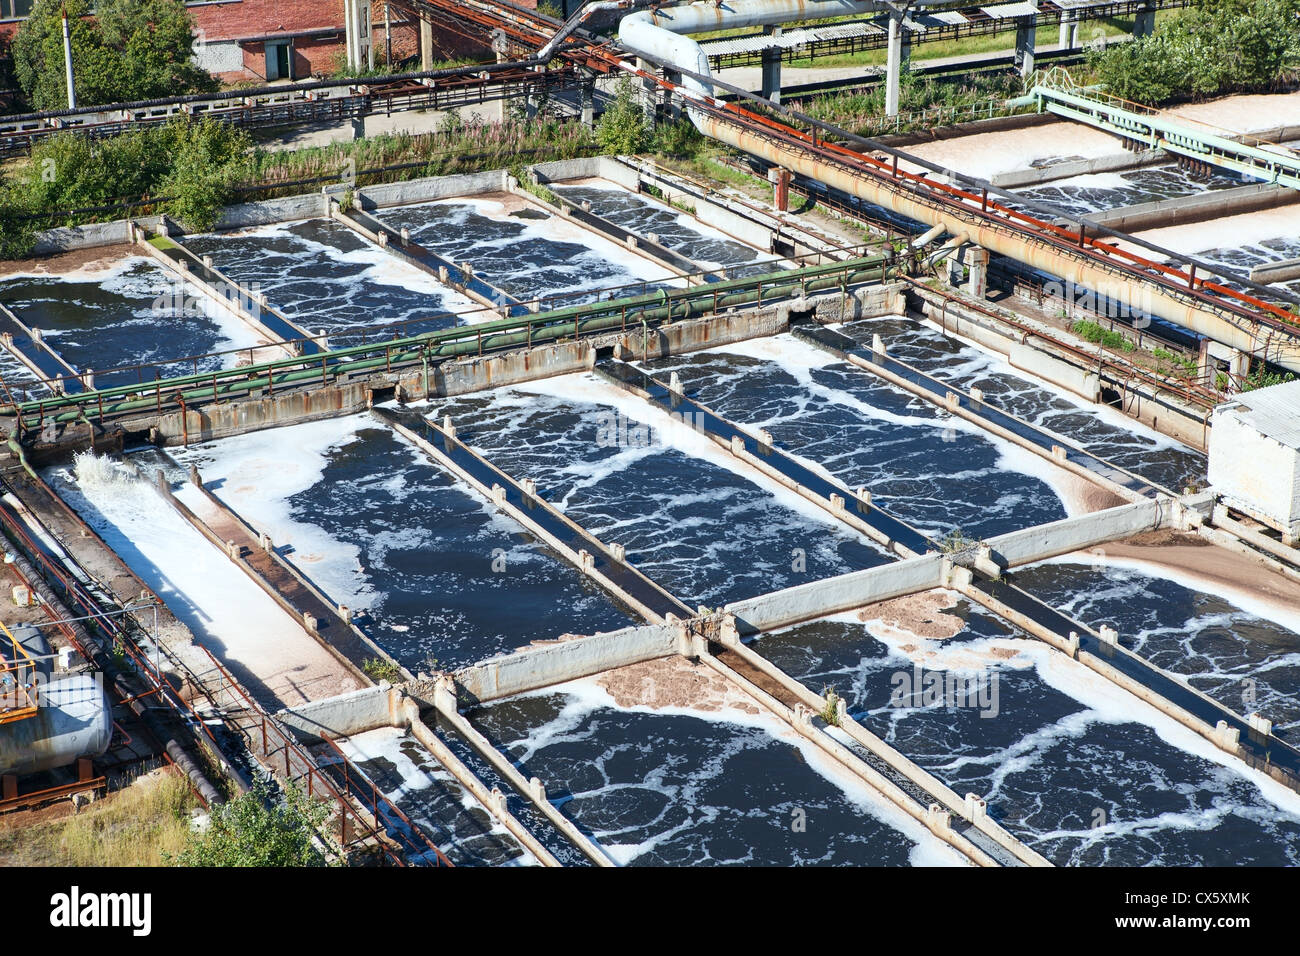 Removing chemical and biological contaminants on sewage treatment plant - Stock Image